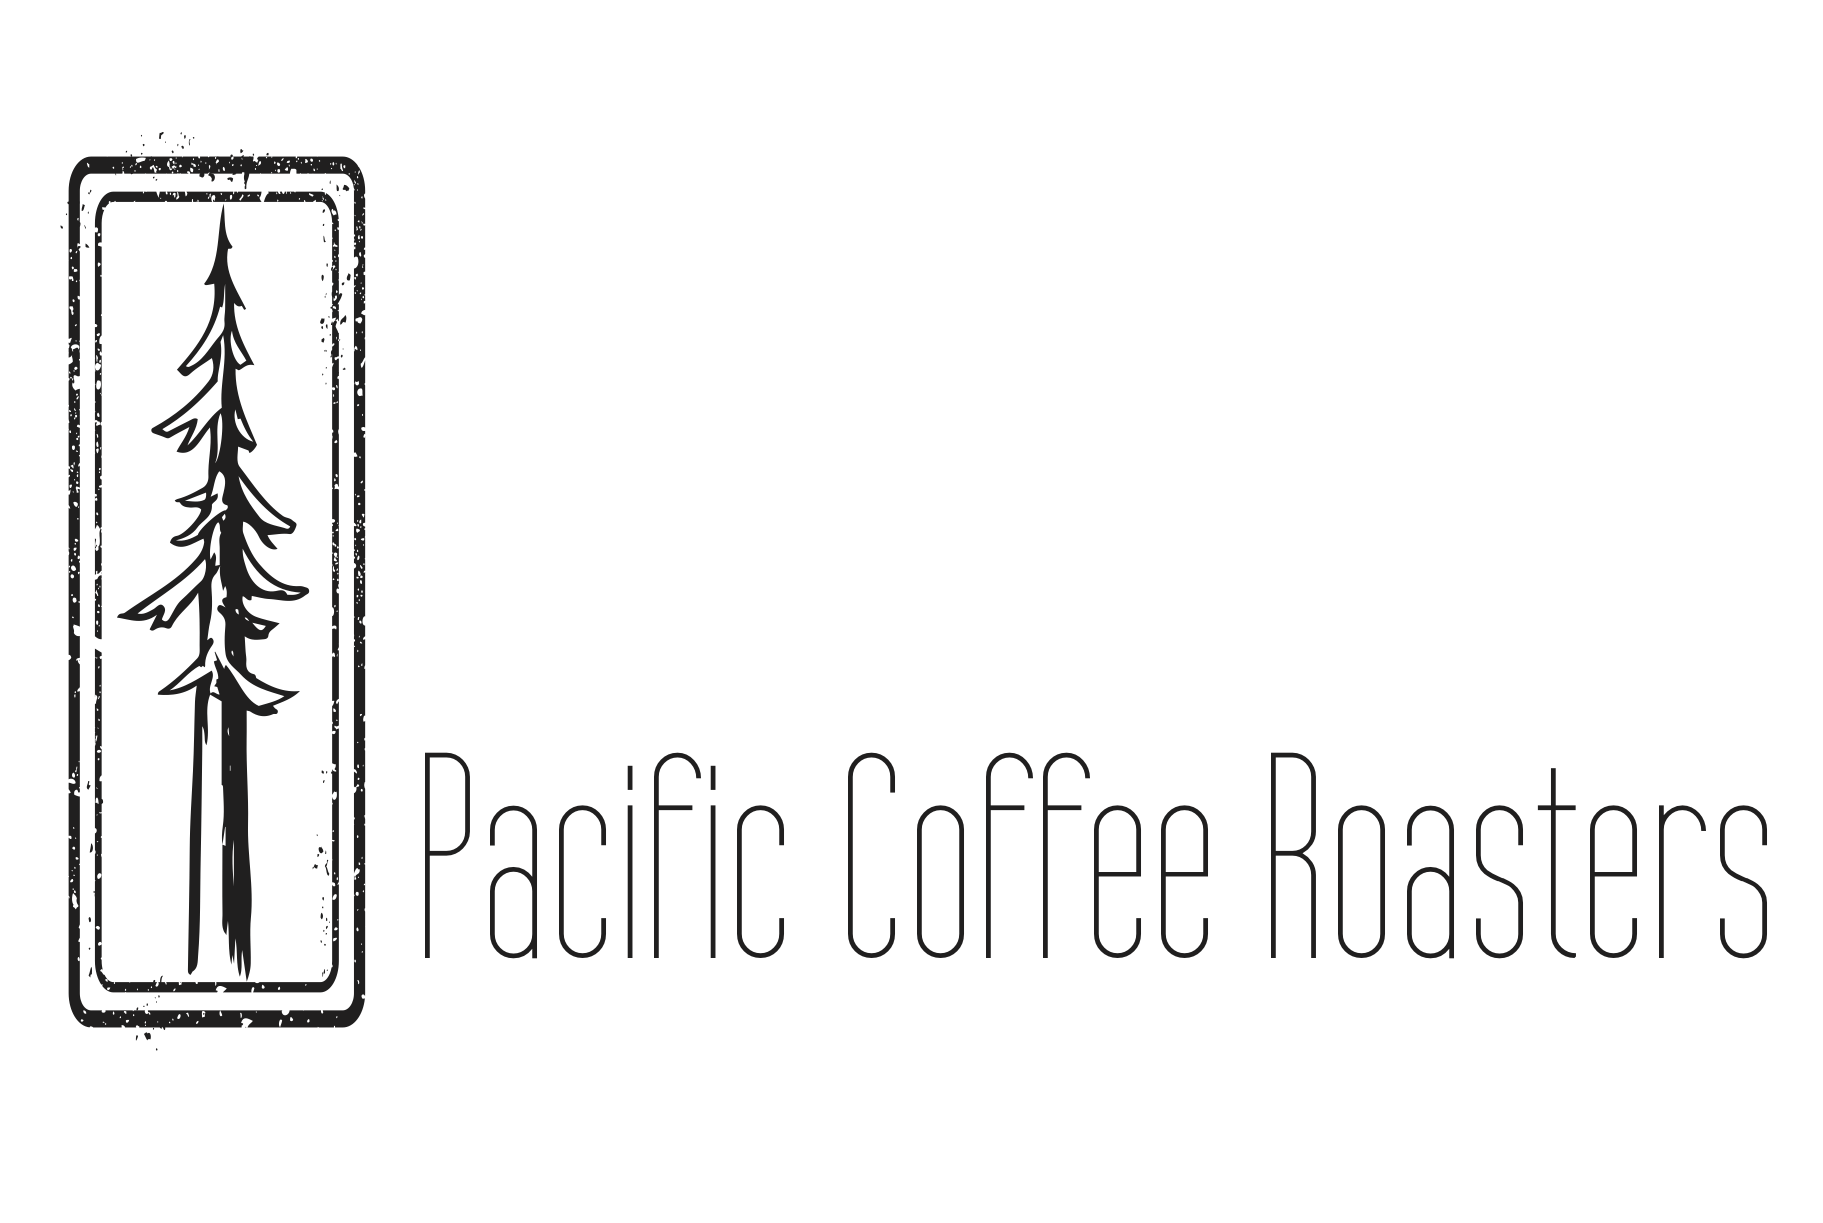 Pacific Coffee Roasters